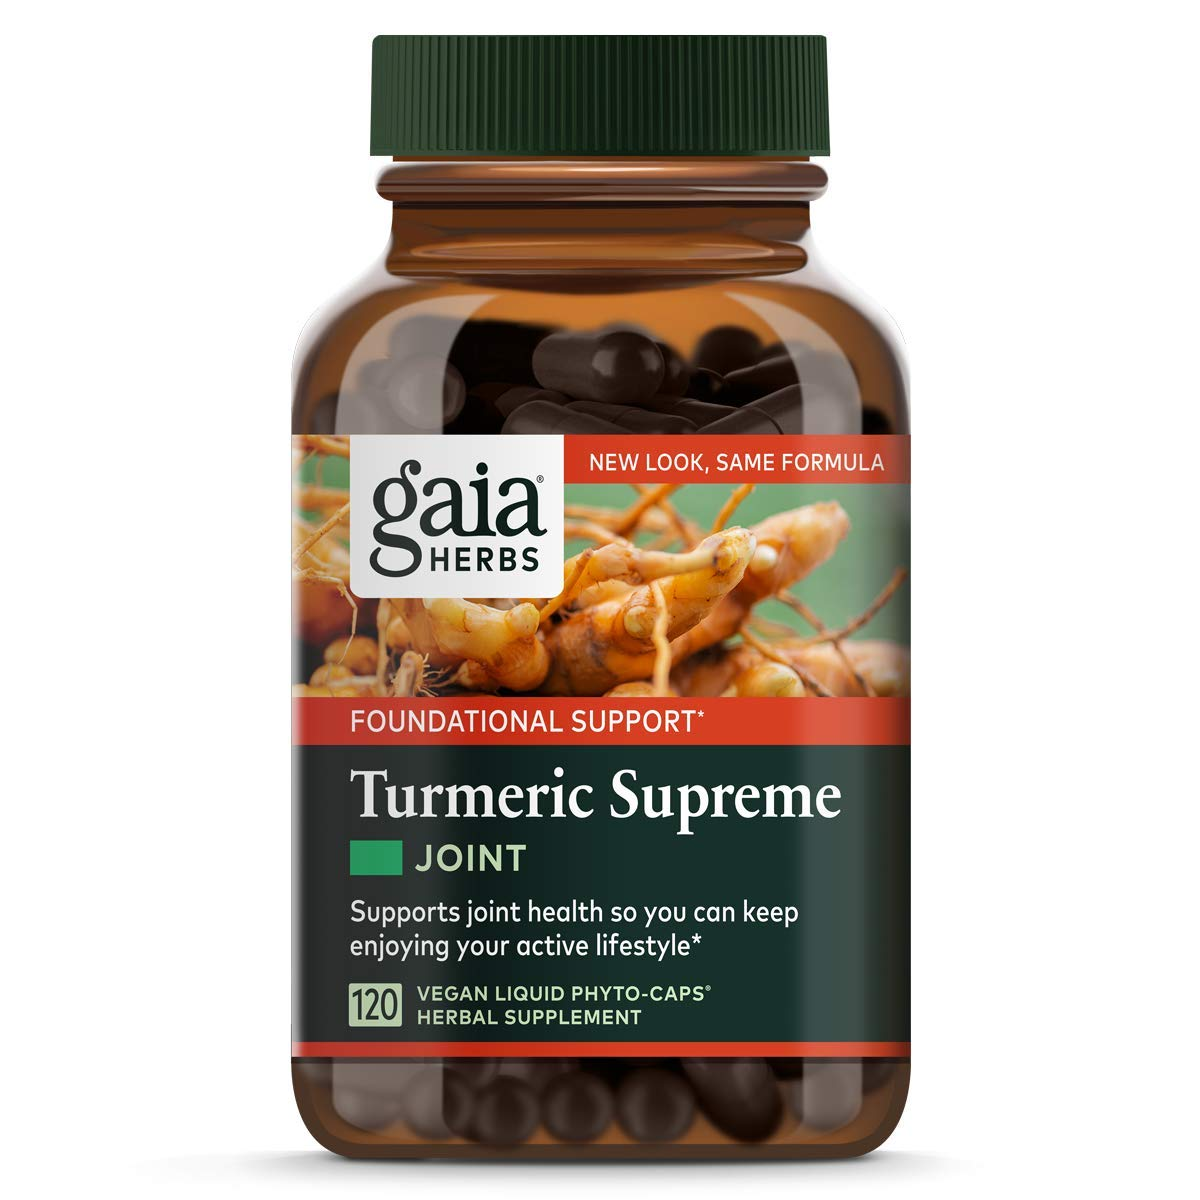 Gaia Herbs, Turmeric Supreme Joint, Turmeric Curcumin Supplement, Supports Joint Health Mobility, Relieves Occasional Pain, Vegan Liquid Capsules, 120 Count